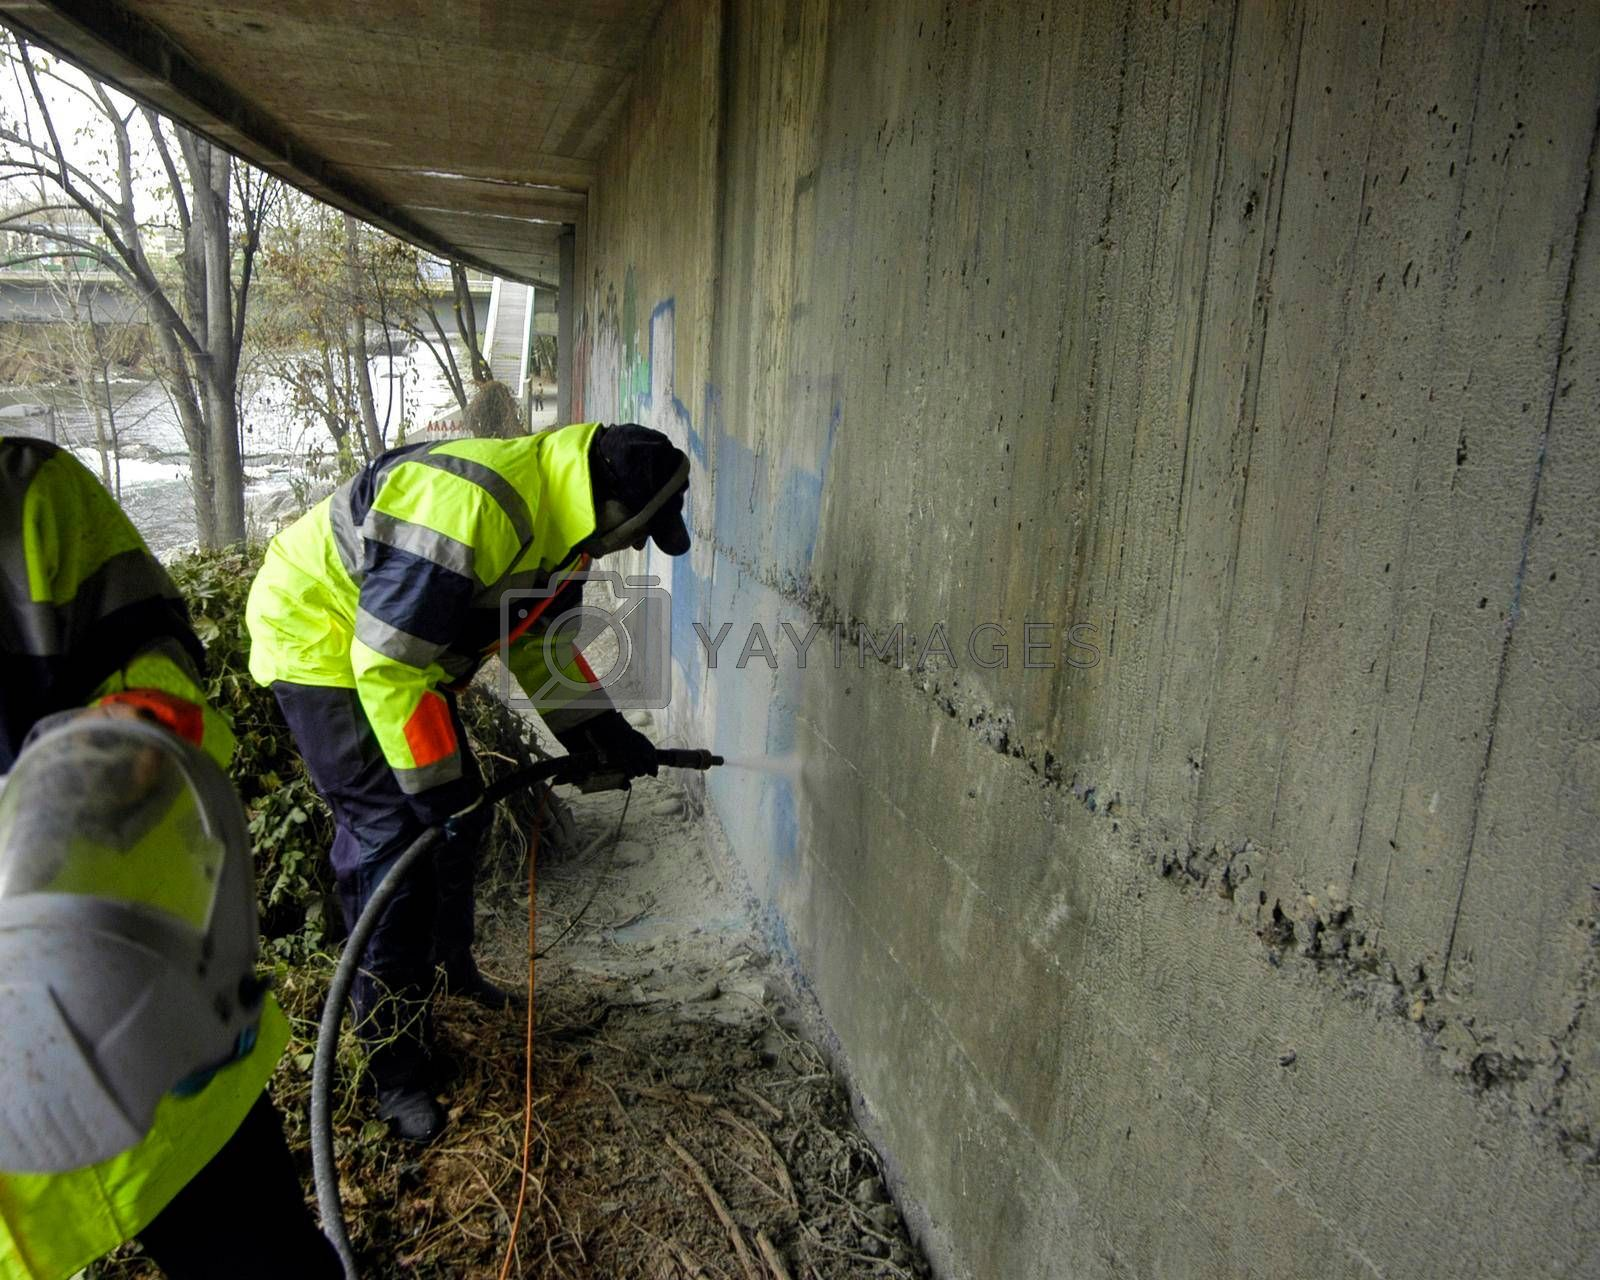 professional graffiti removal on a wall in a public space